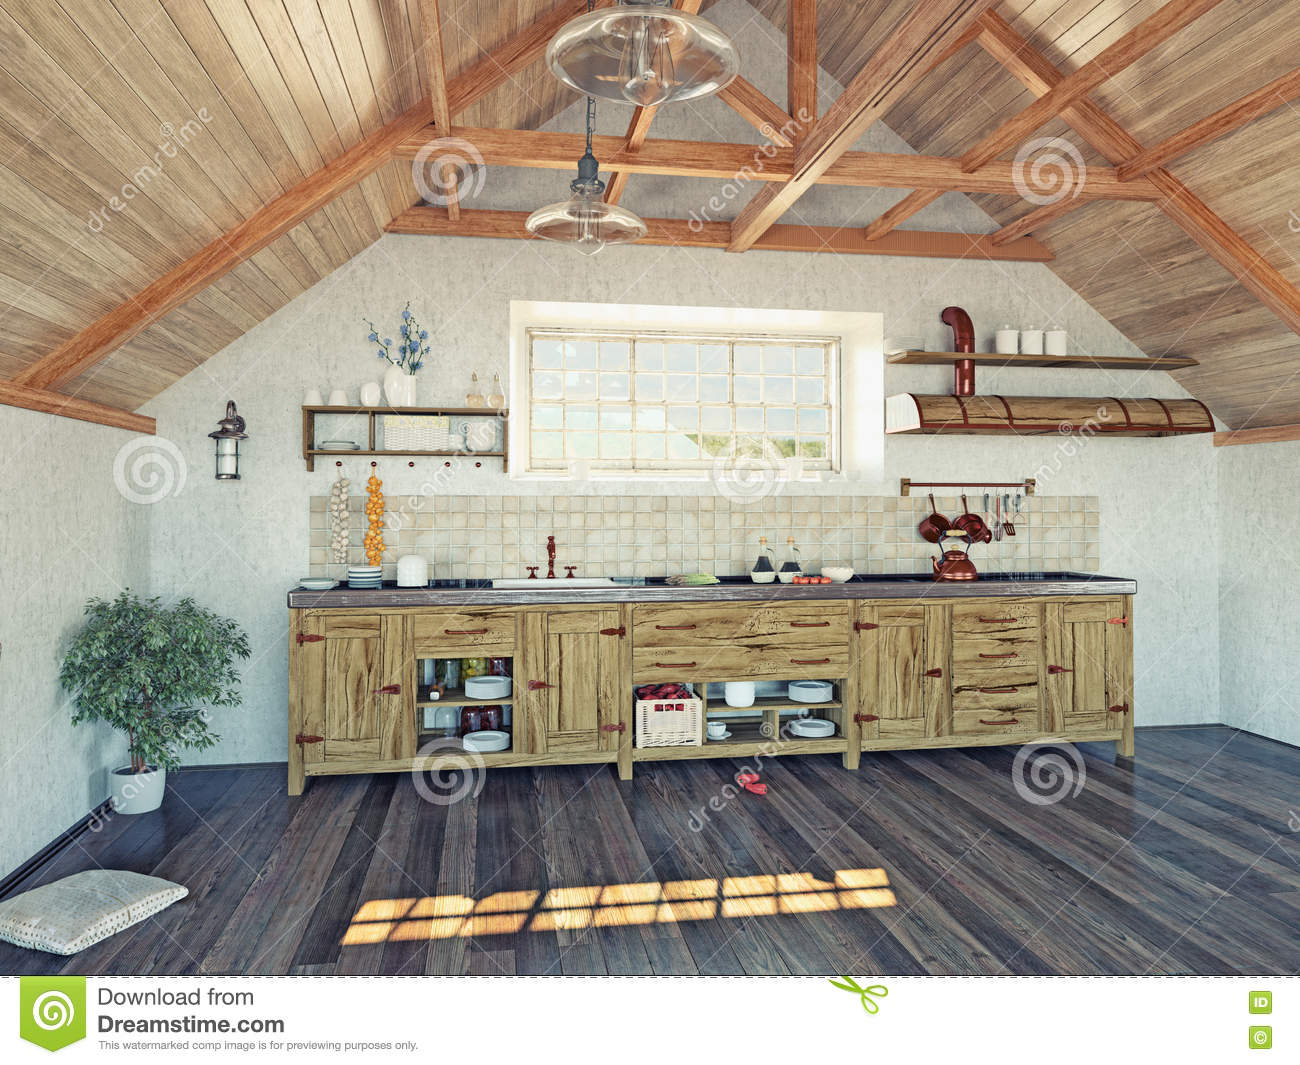 Kitchen in the attic stock illustration image 48773617 for Attic kitchen designs